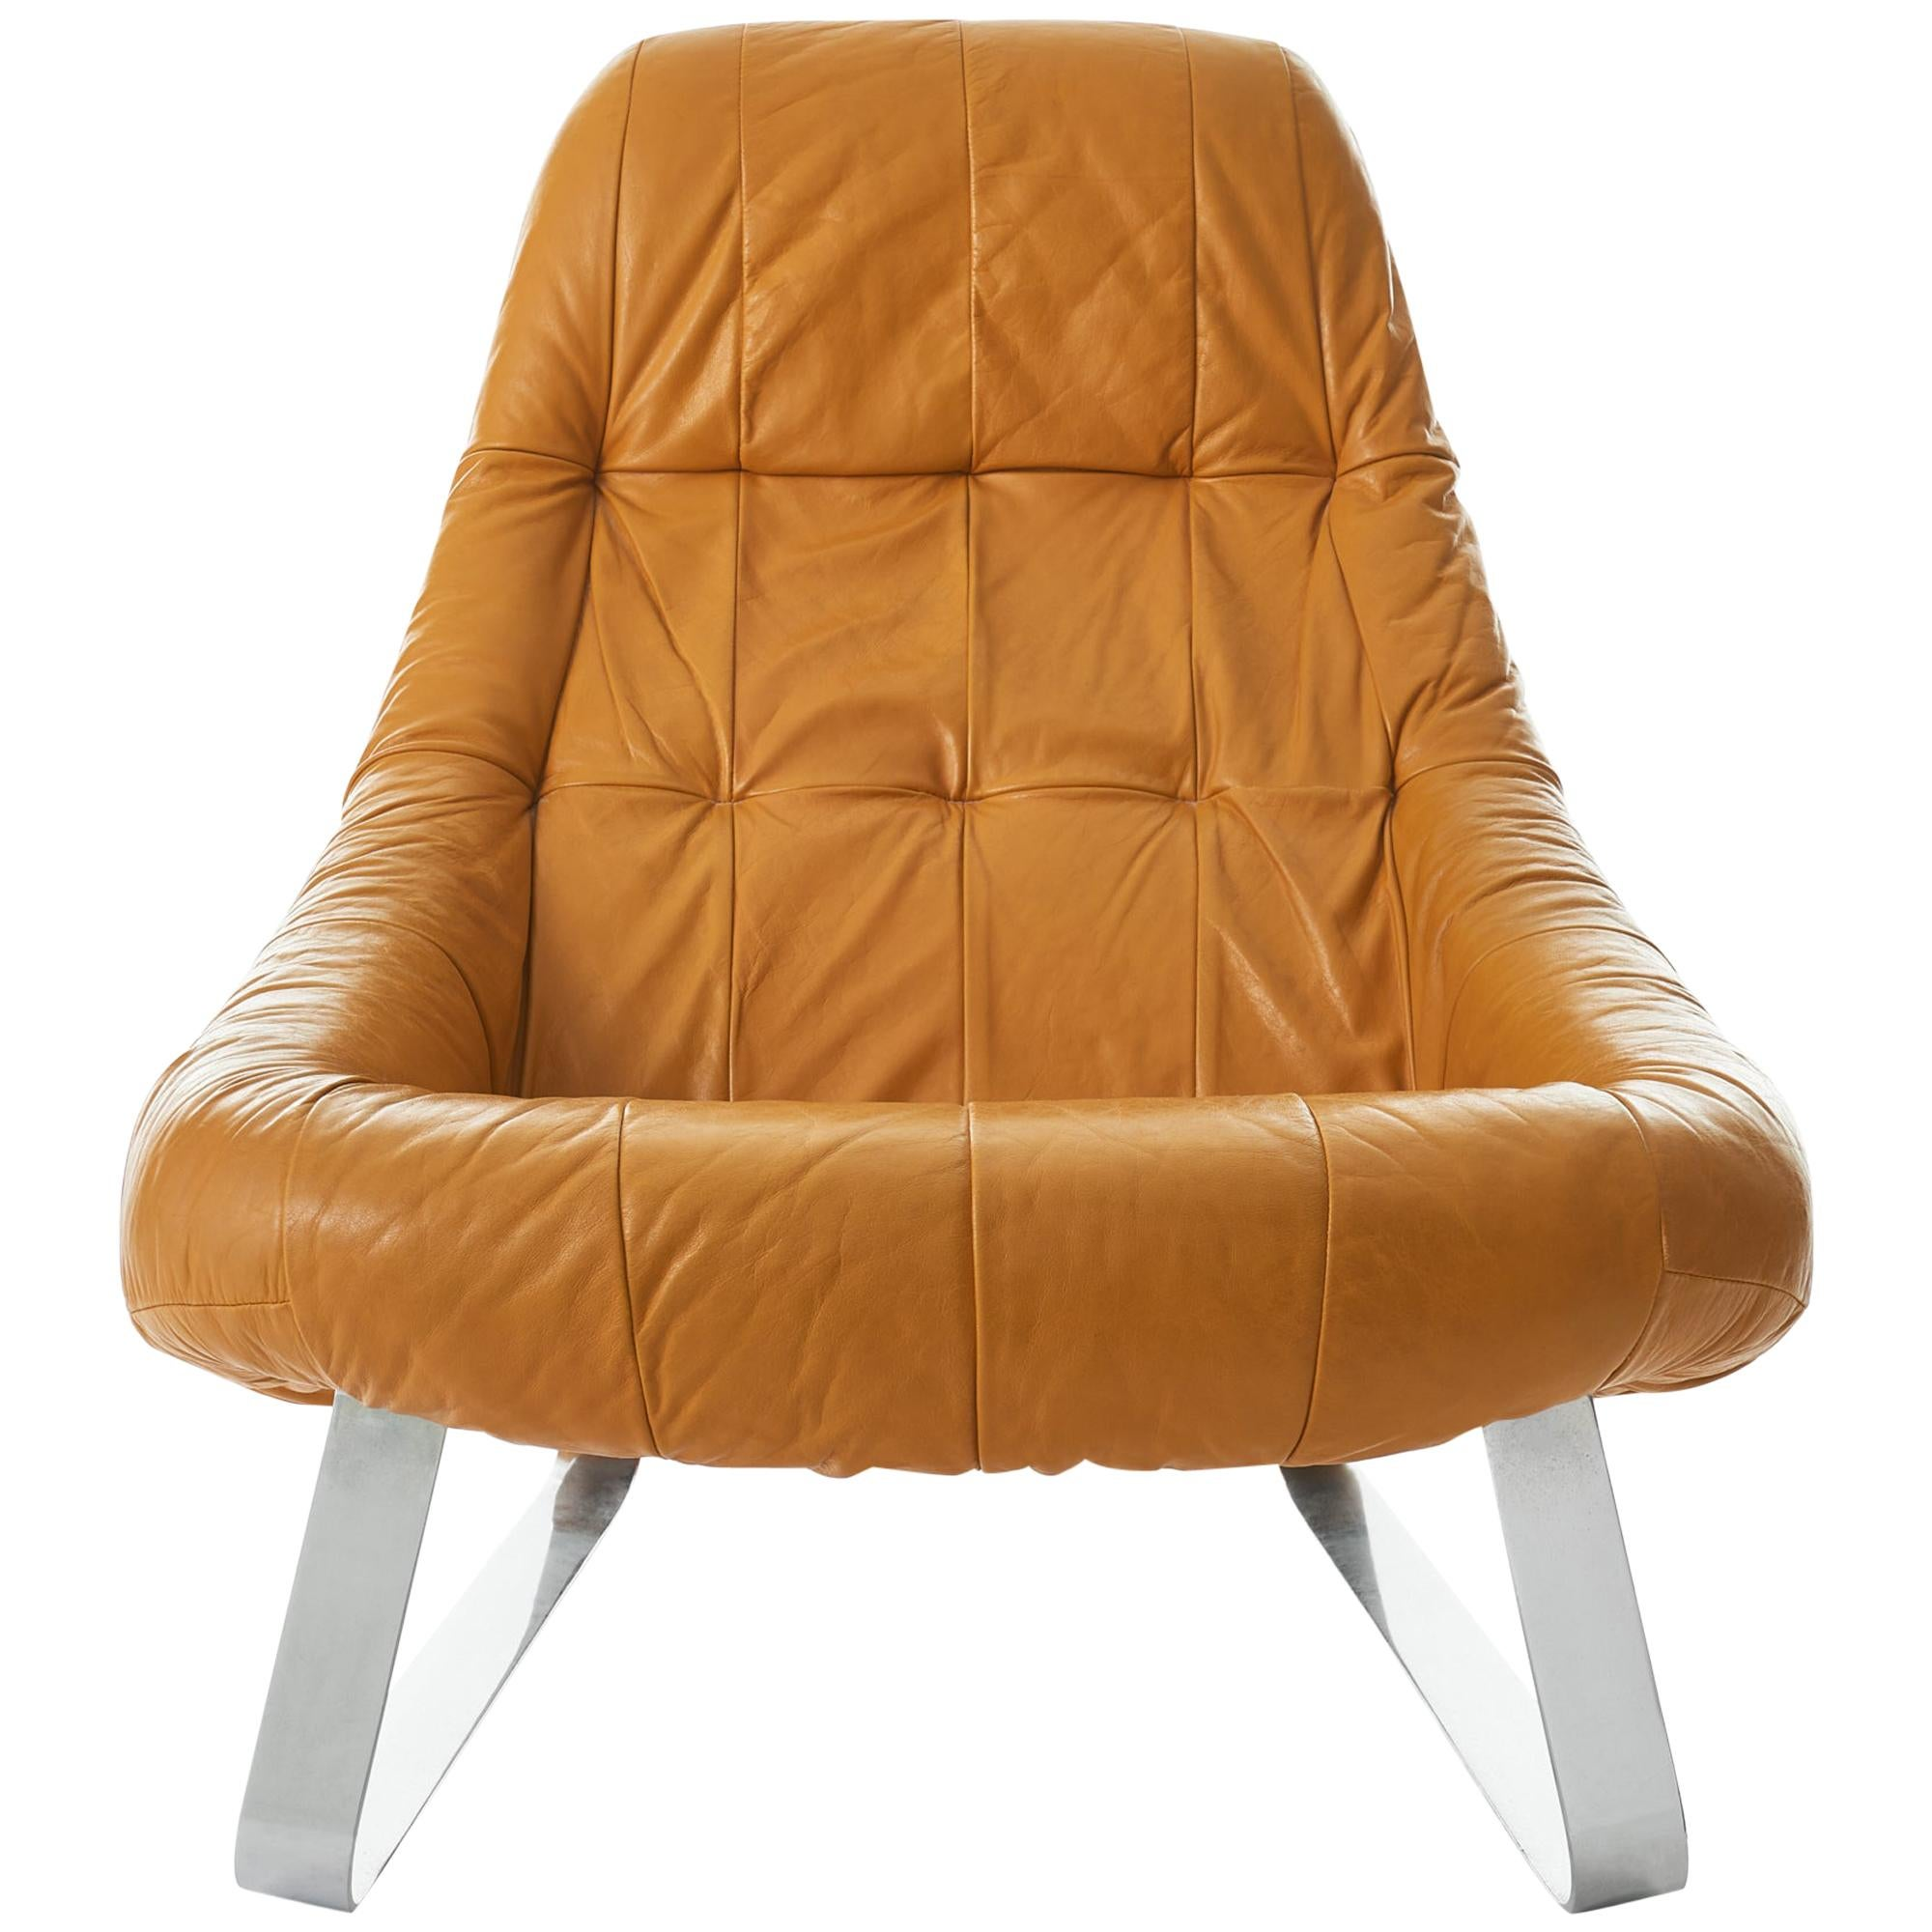 Percival Lafer 'Earth' Chrome and Leather Lounge Chair